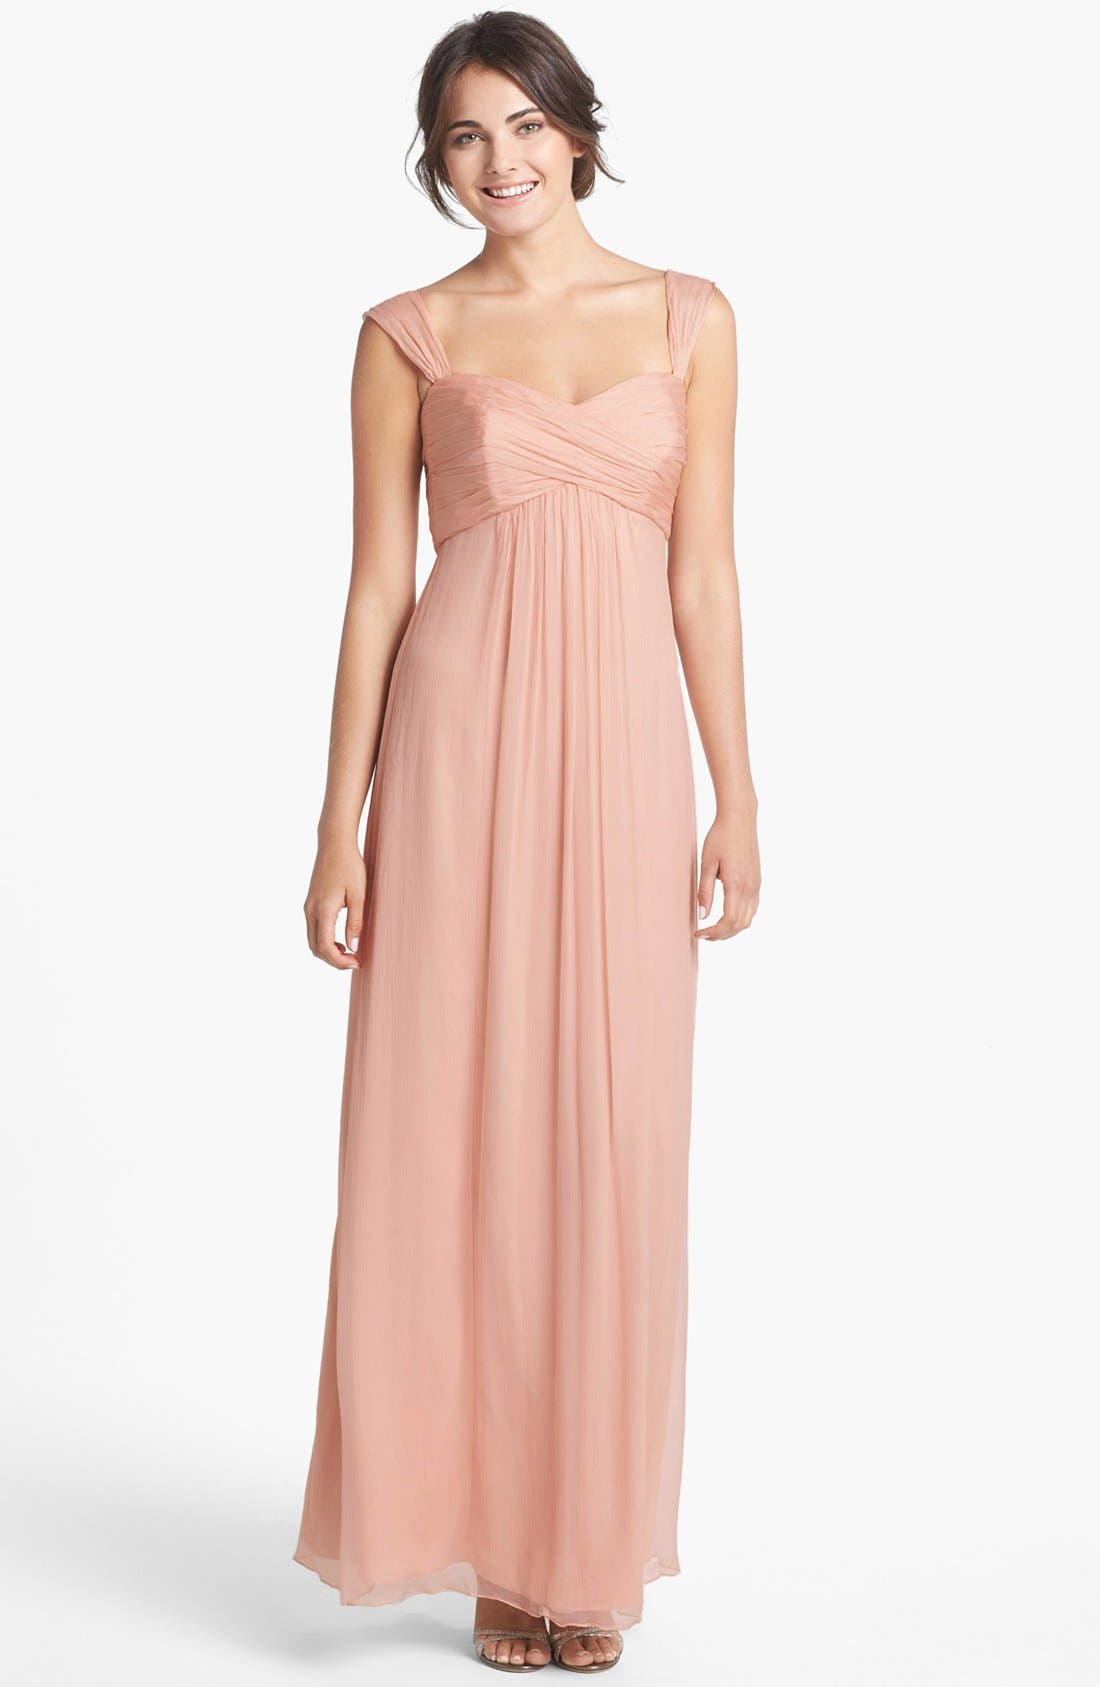 Main Image - Amsale Cap Sleeve Chiffon Gown